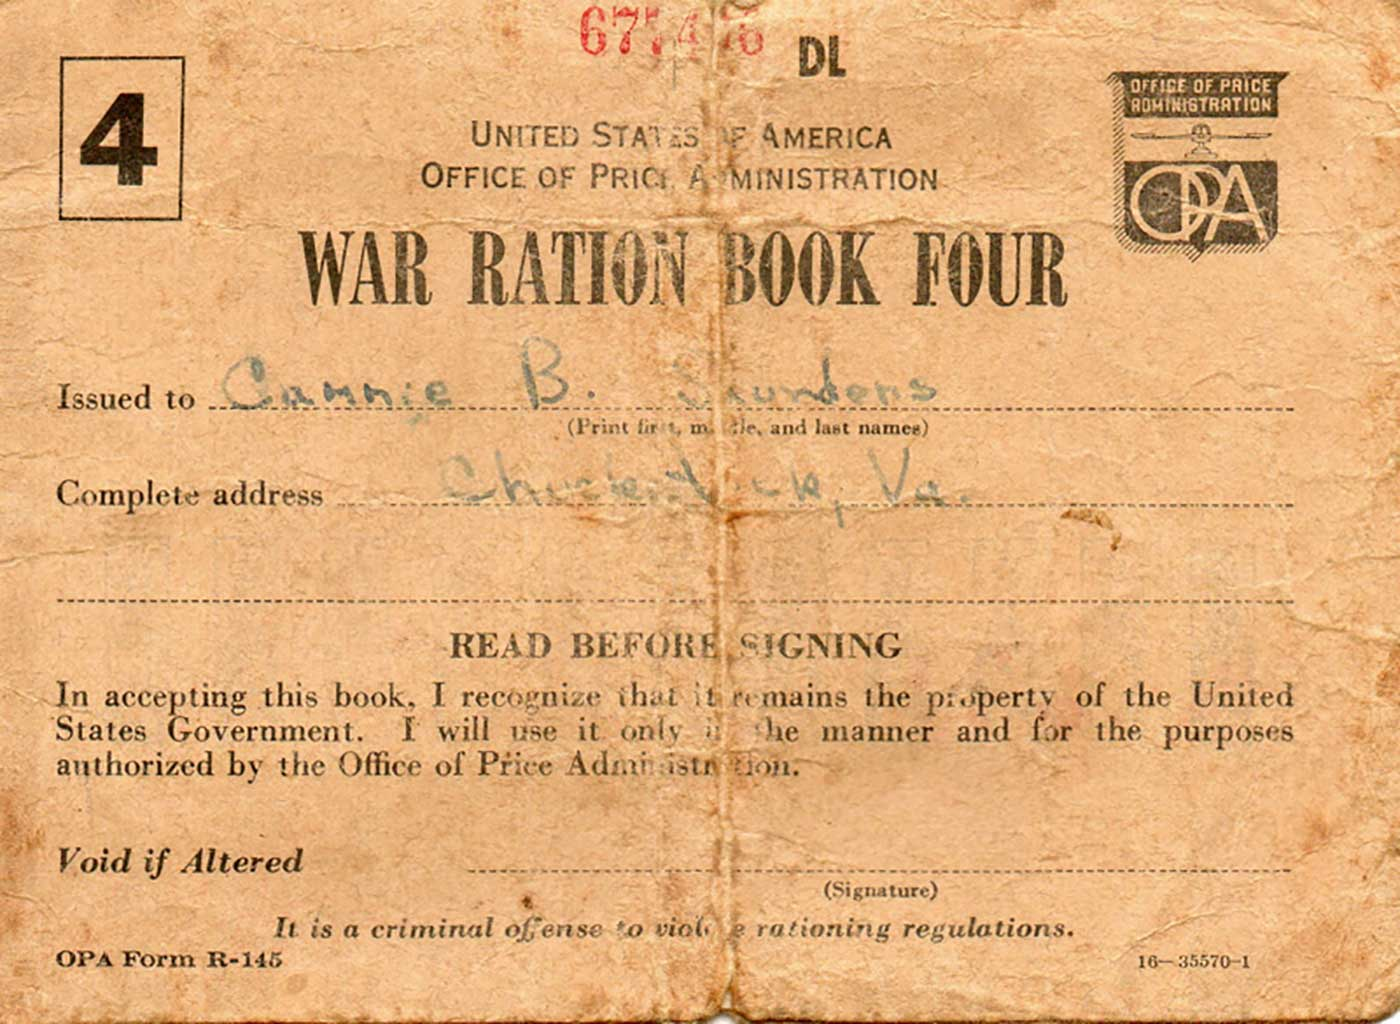 war-ration-coupon-book-front-cover-img839